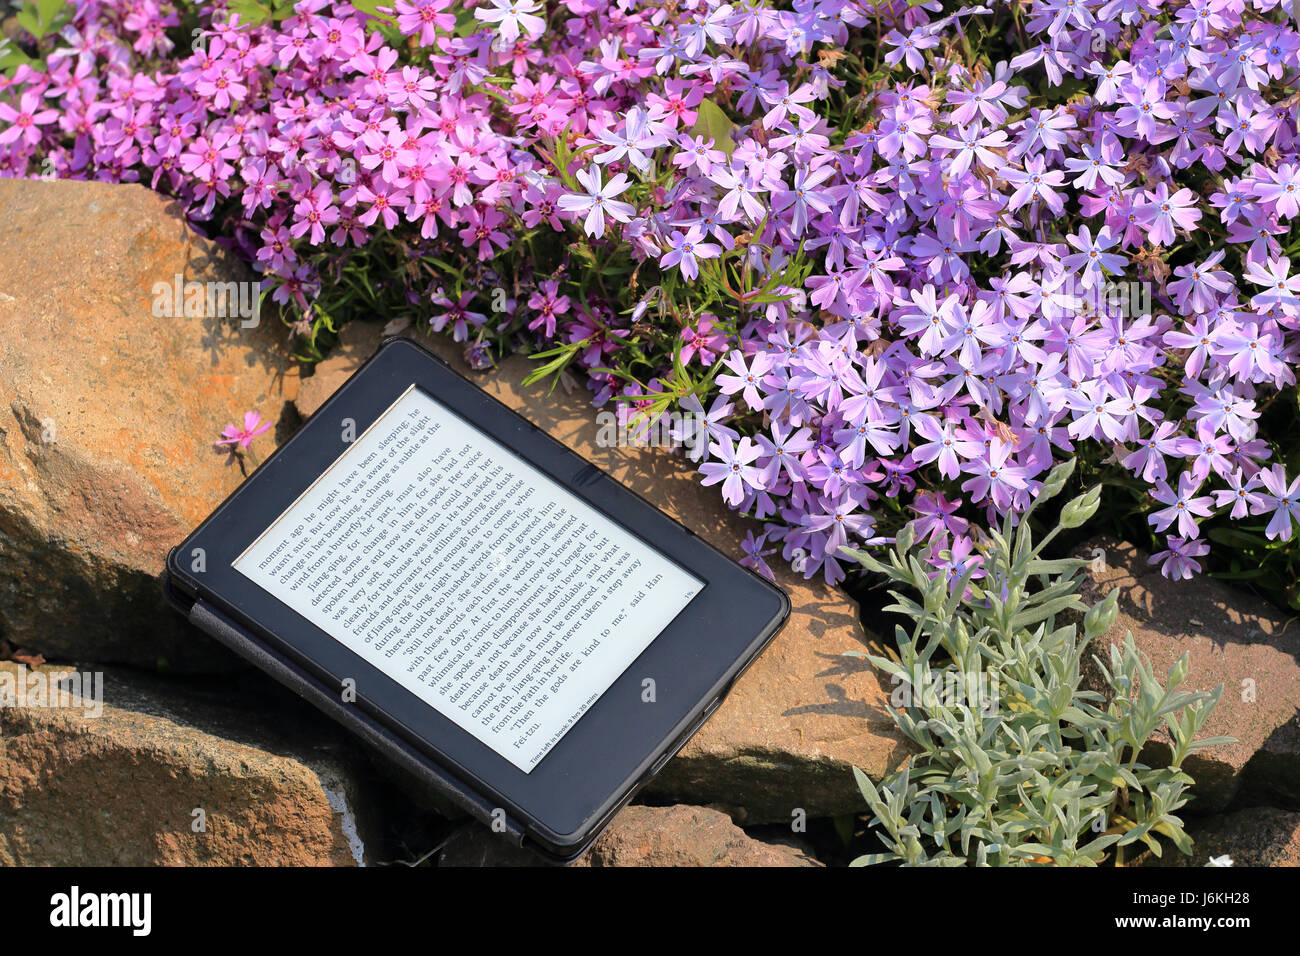 An electronic book reader on the stone - Stock Image